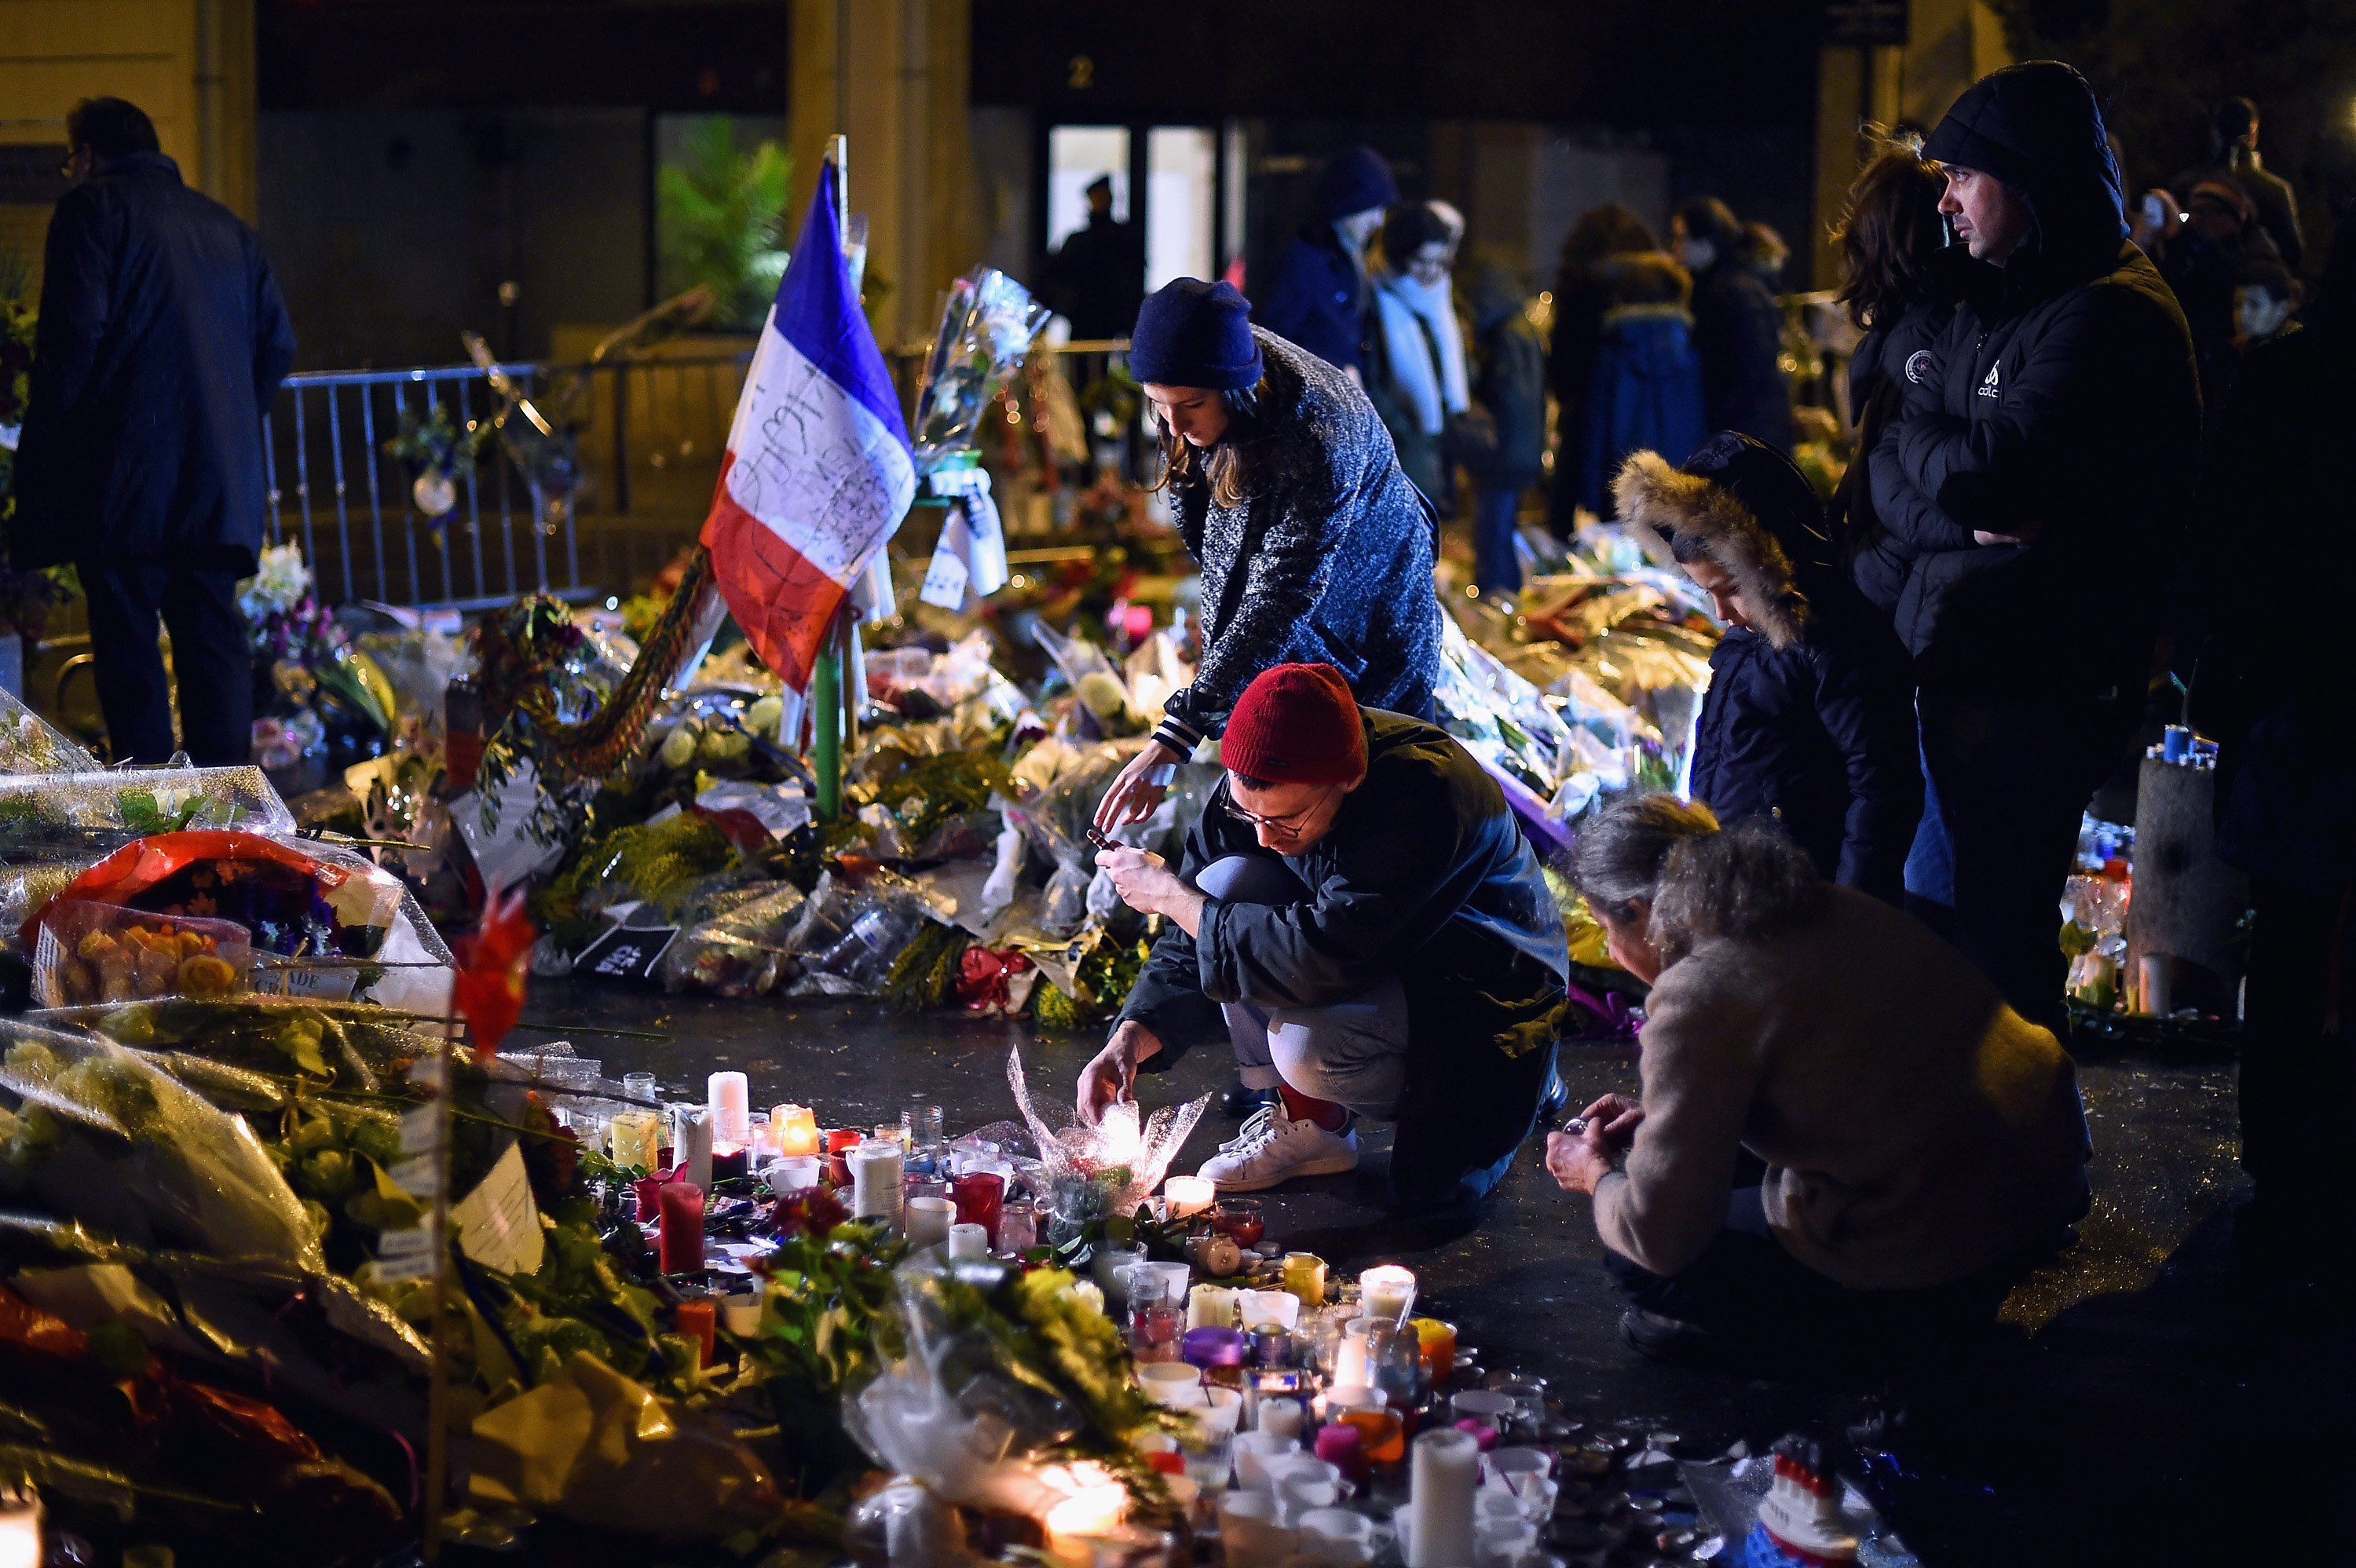 People light candles in tribute near the offices of French satirical magazine Charlie Hebdo on Jan. 10, 2015 in Paris.